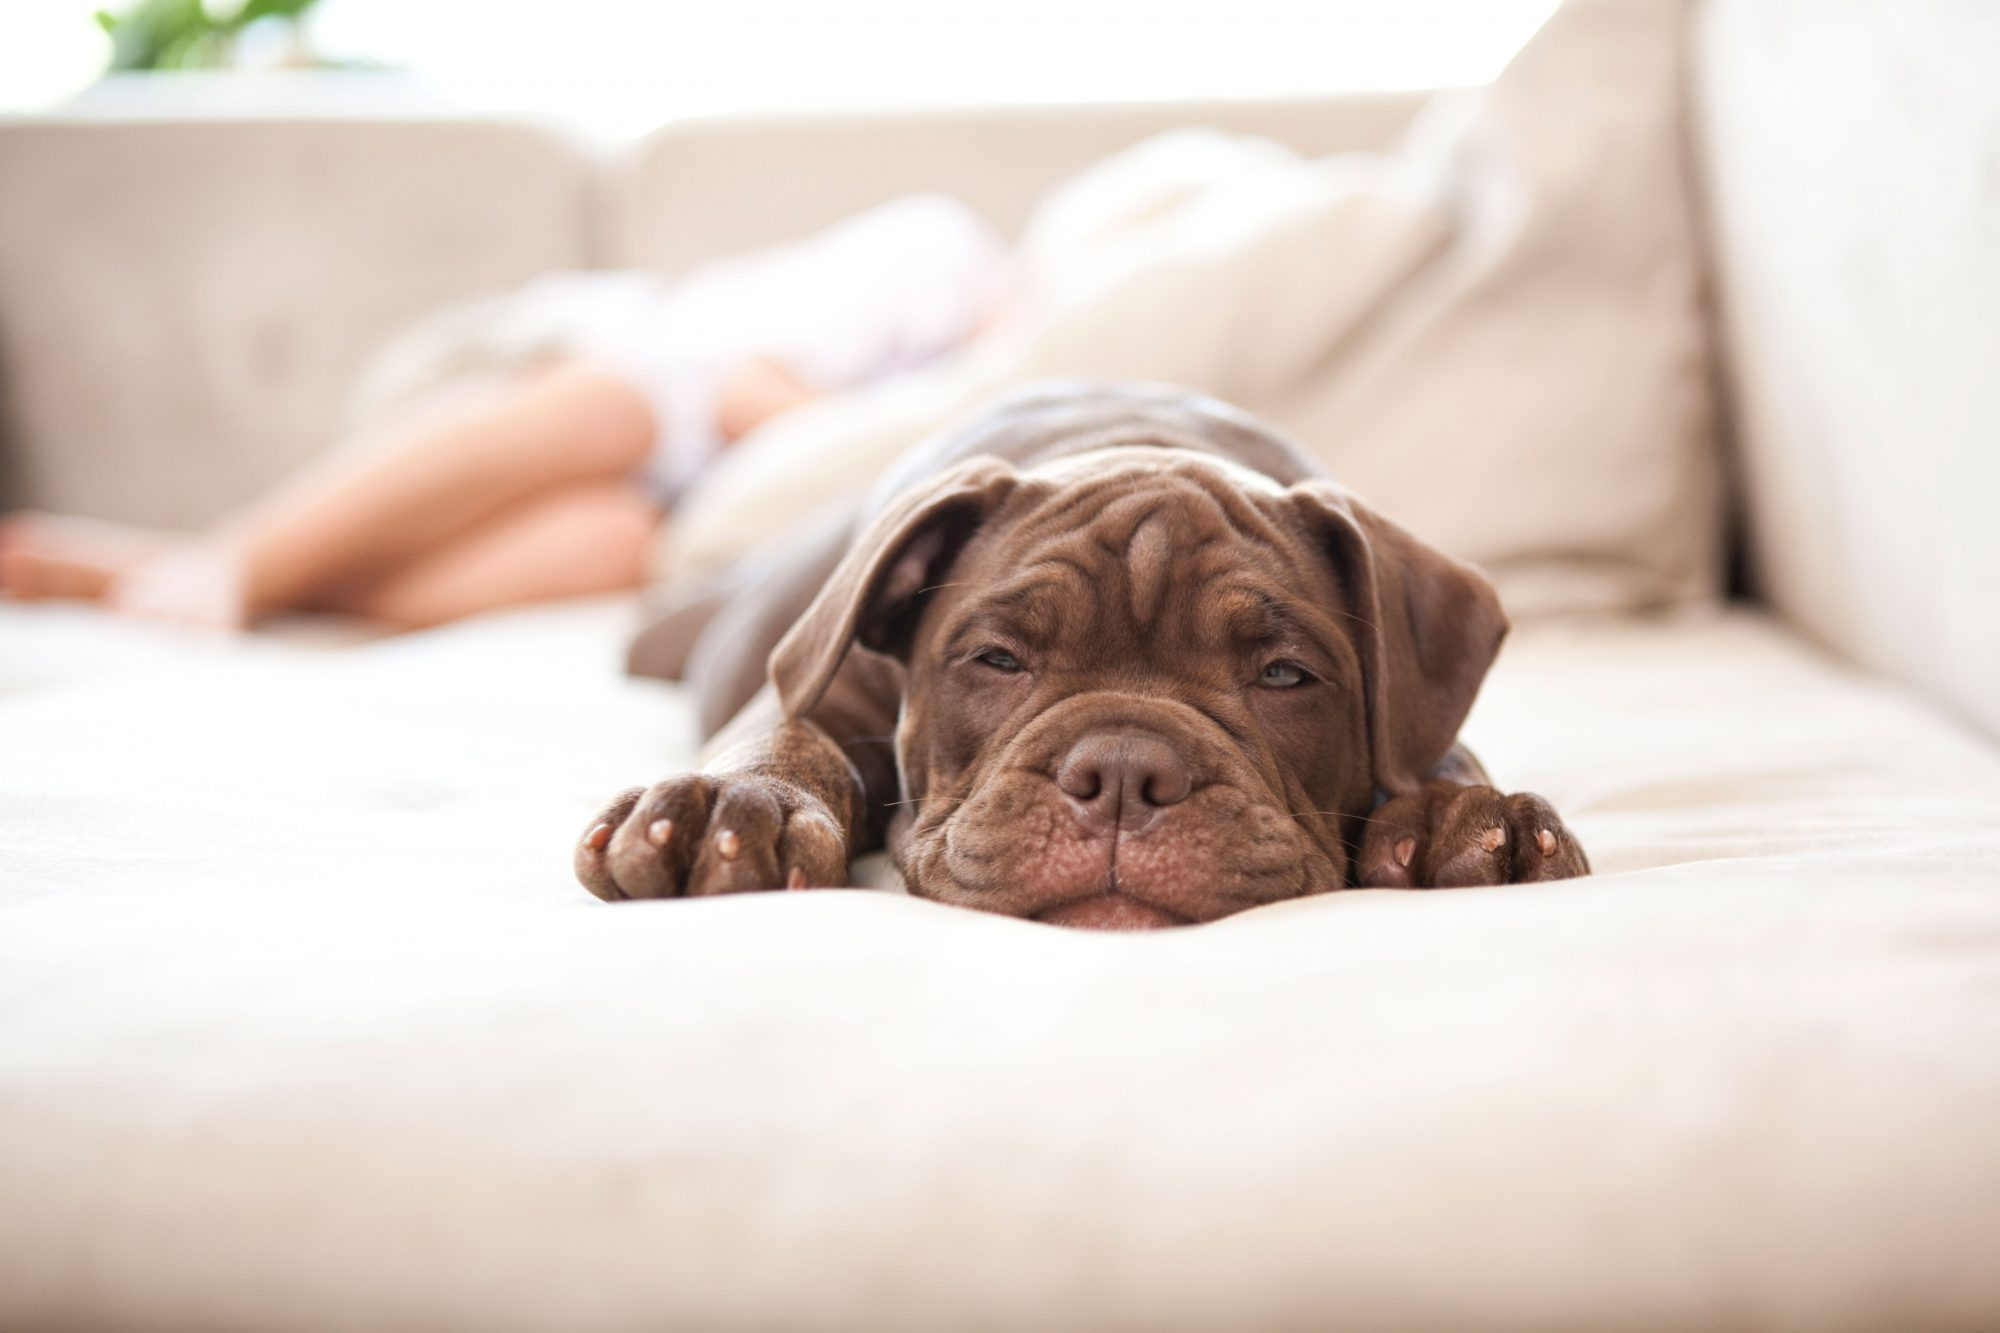 Portrait of Olde English Bulldogge sleeping on the couch